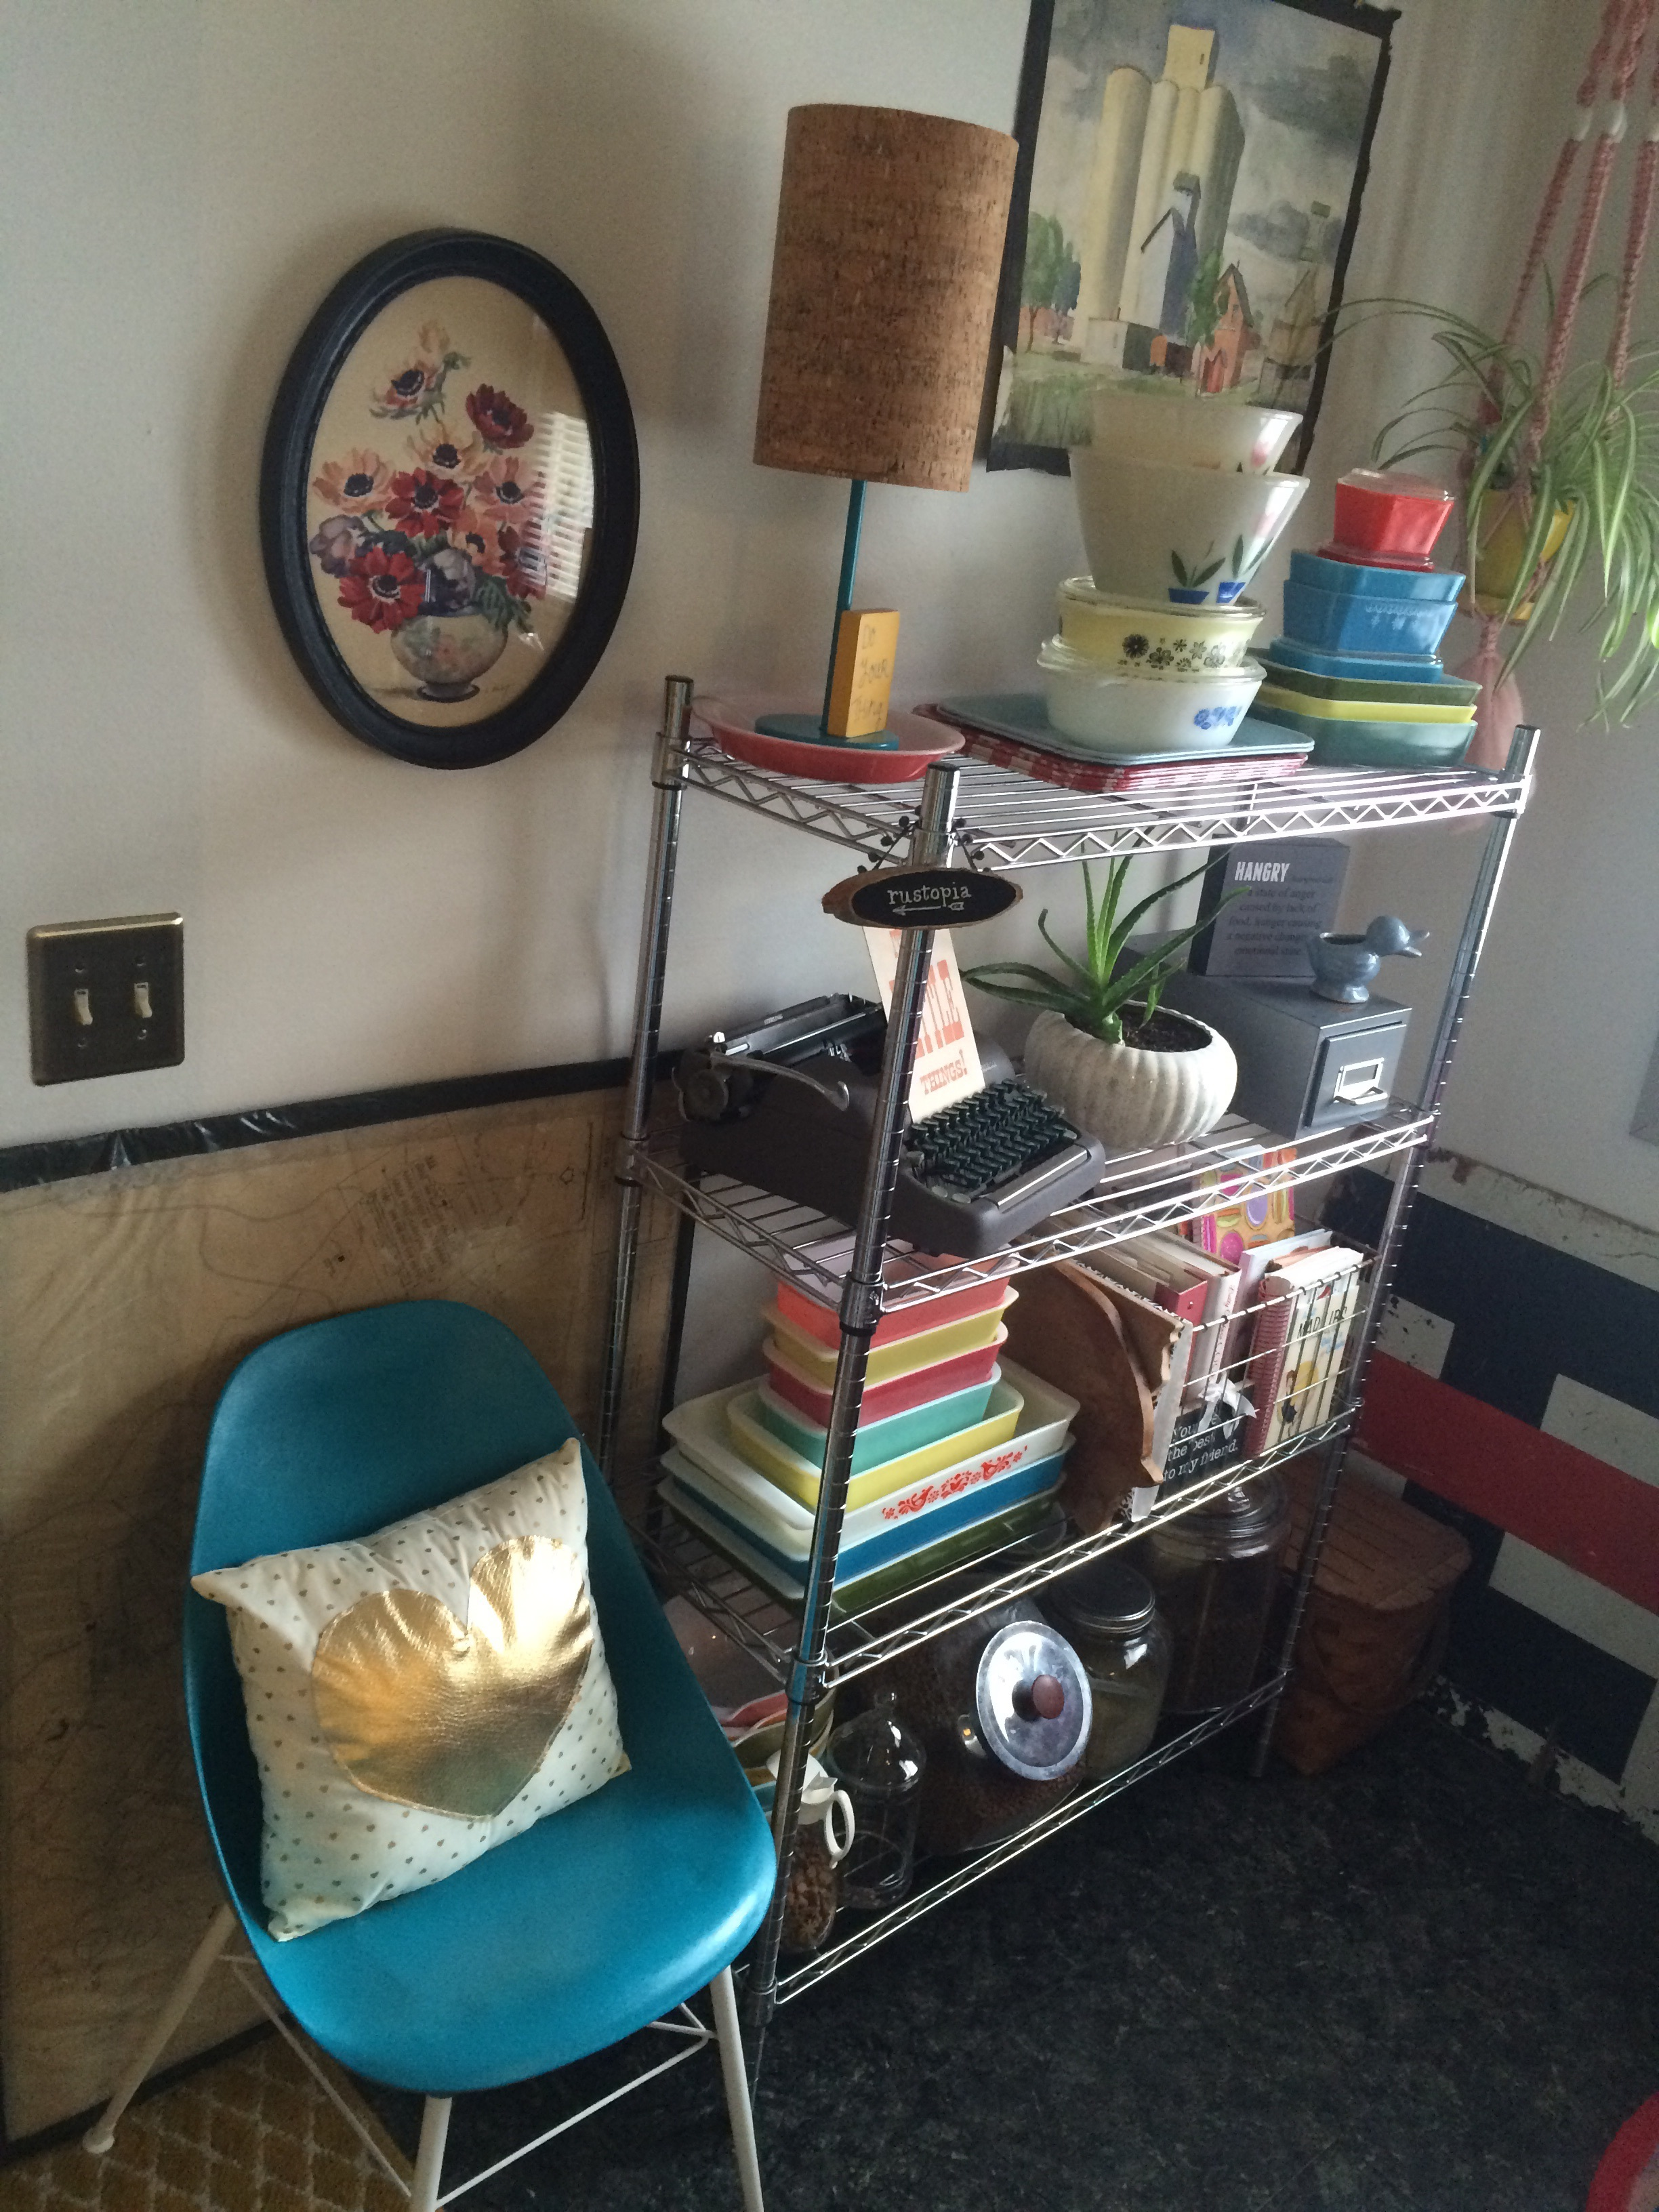 Teal vintage chair with white and gold pillow next to metal shelving with color dishes.    RustopiaConsulting.com